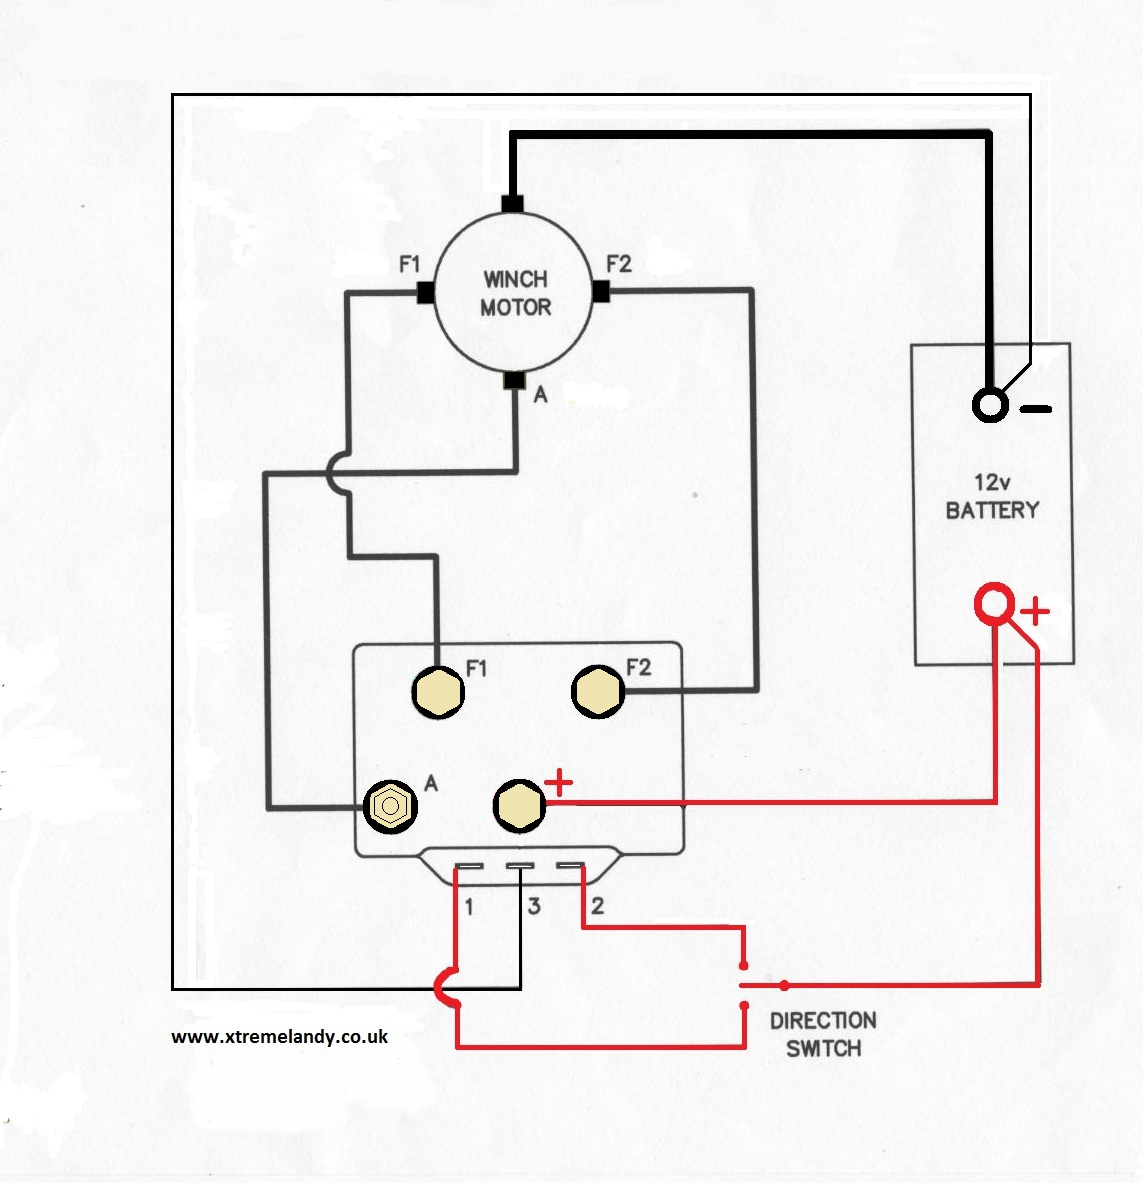 Warn Winch Remote Wiring Diagram on warn winch 8274 wiring diagram